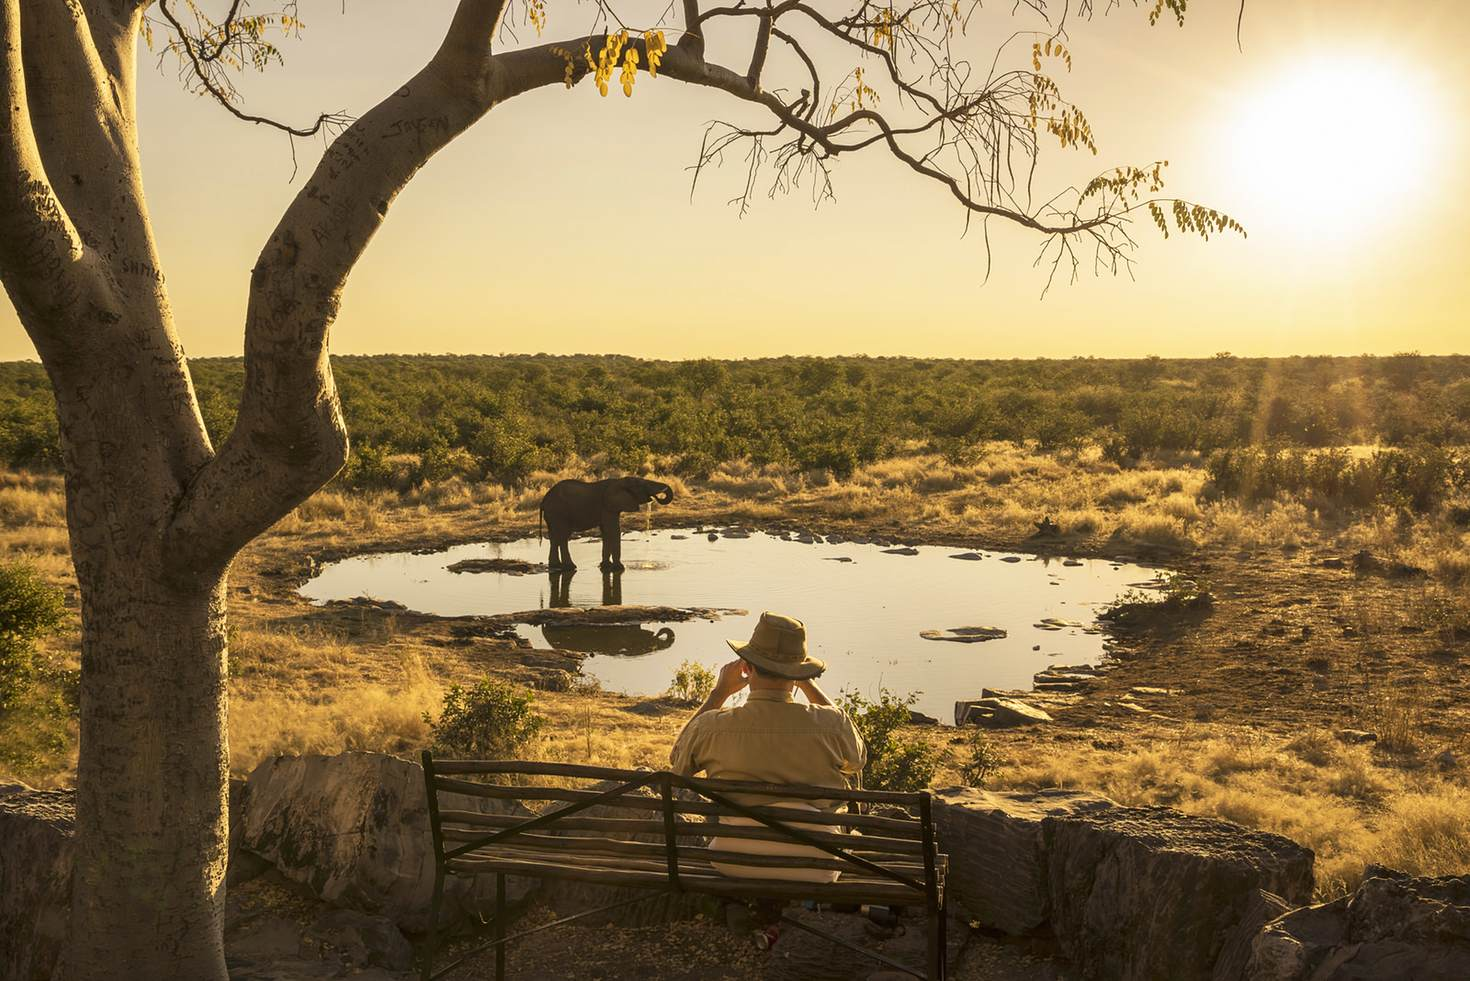 'I so regret going on that safari' said no one ever © Buena Vista Images / Getty Images